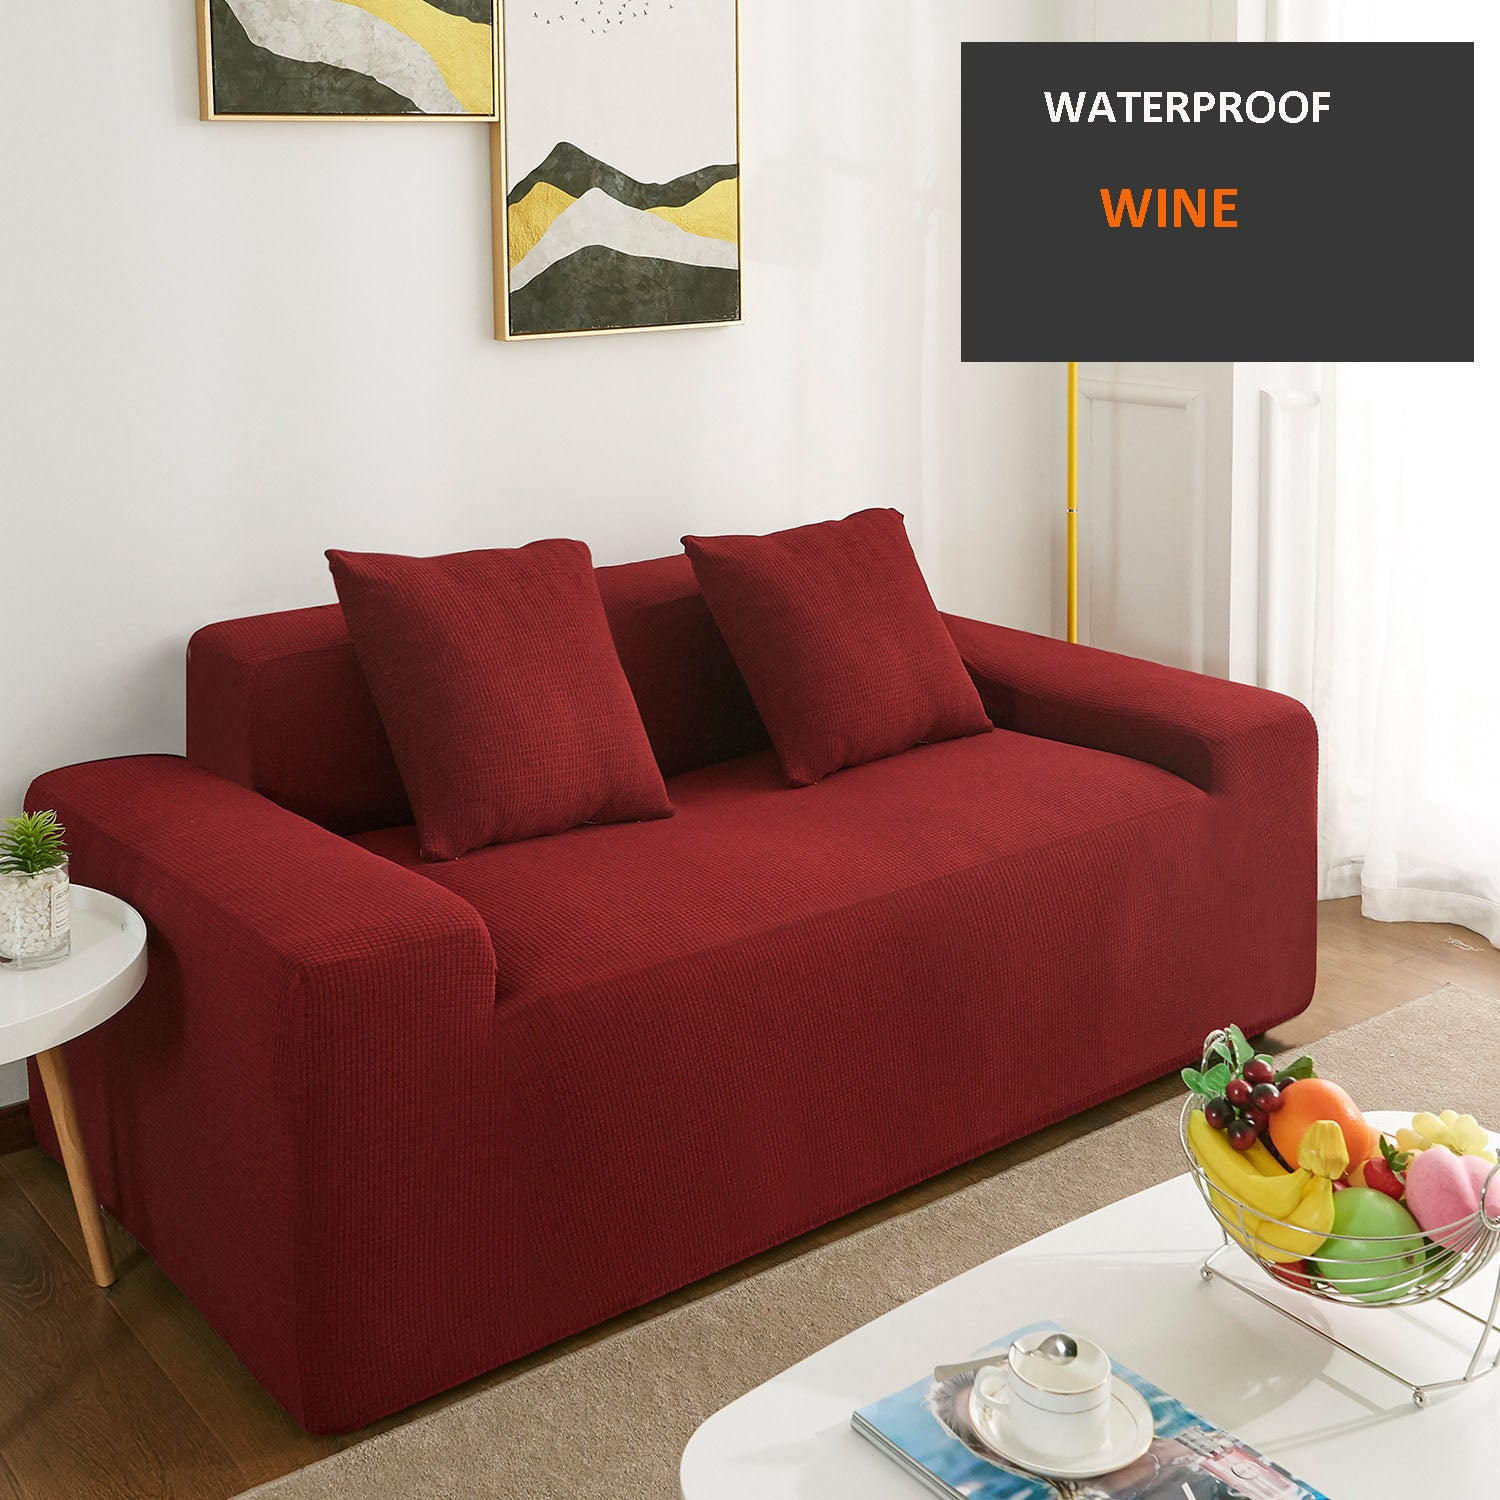 Incredible High Quality Waterproof Sofa Cover Bralicious Painted Fabric Chair Ideas Braliciousco